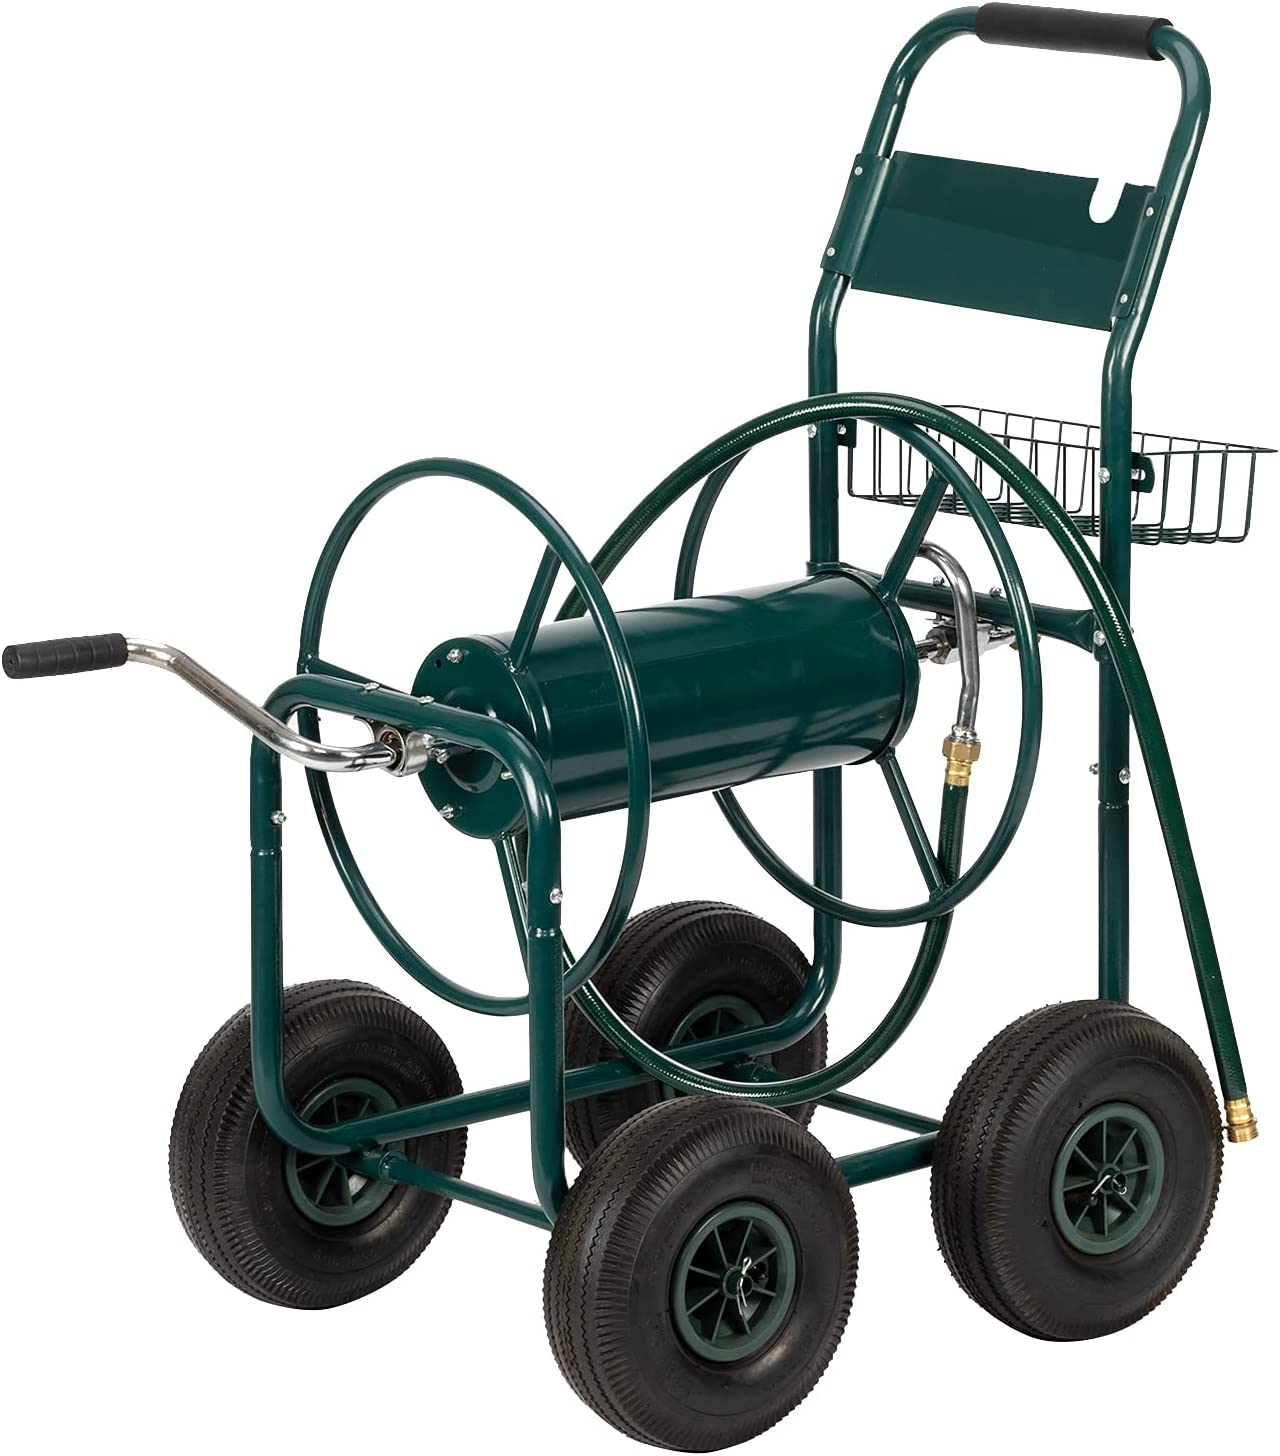 VINGLI Garden Hose Reel Cart, 4-Wheel Portable Residential Hose Reel Cart, Hose Guide System with Storage Basket, Rust Resistant, for Family Yard, Garden Industrial and Farm